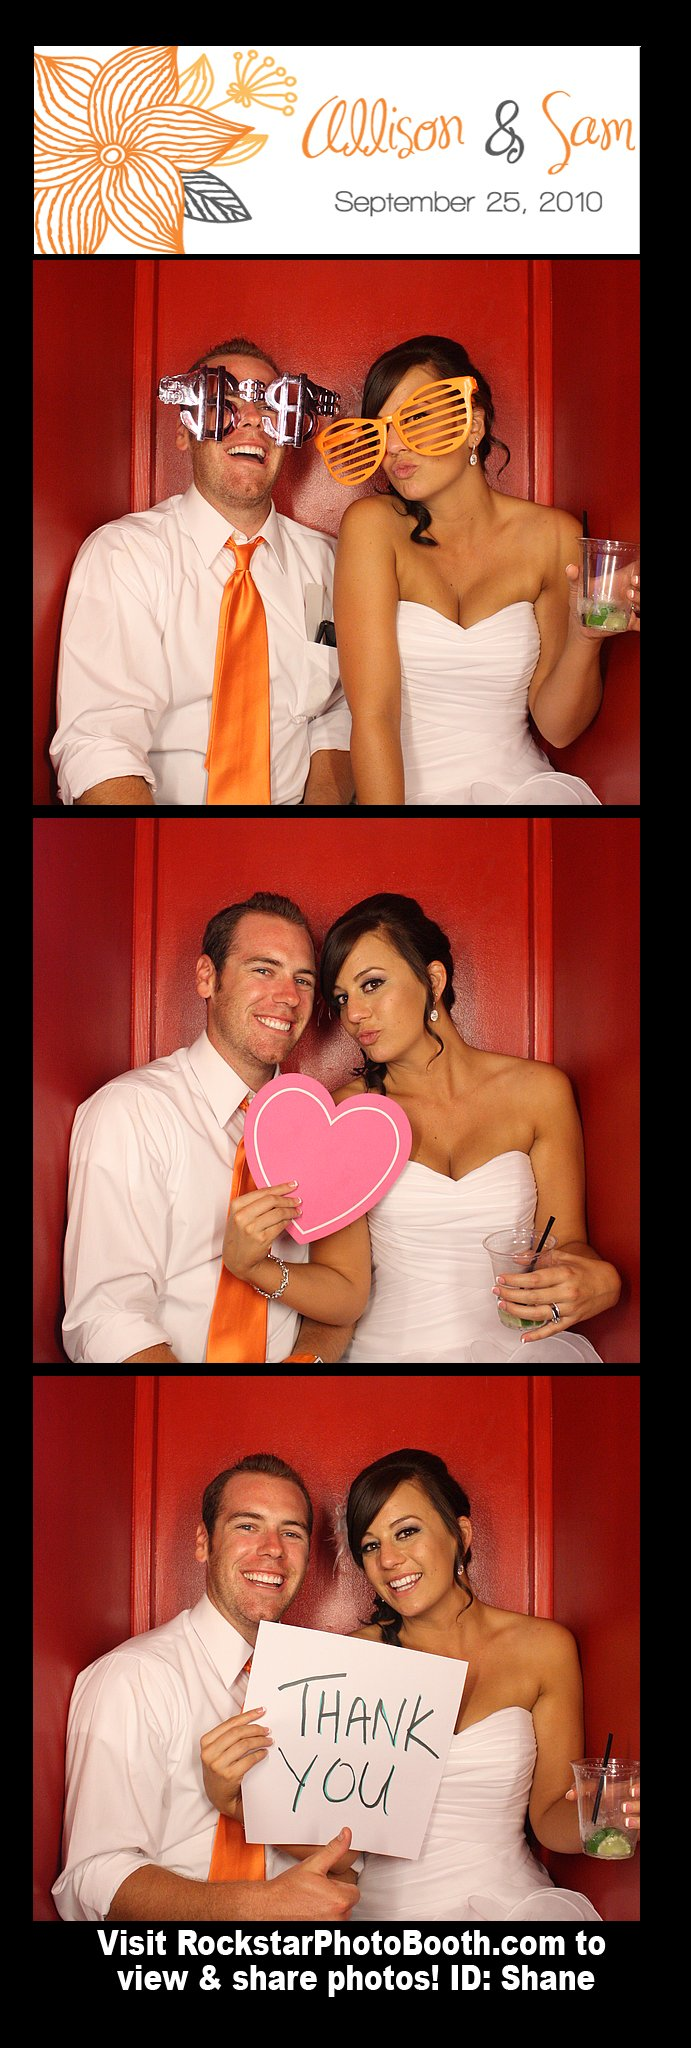 The photobooth at our wedding from the awesome guys at Rockstar Photobooth